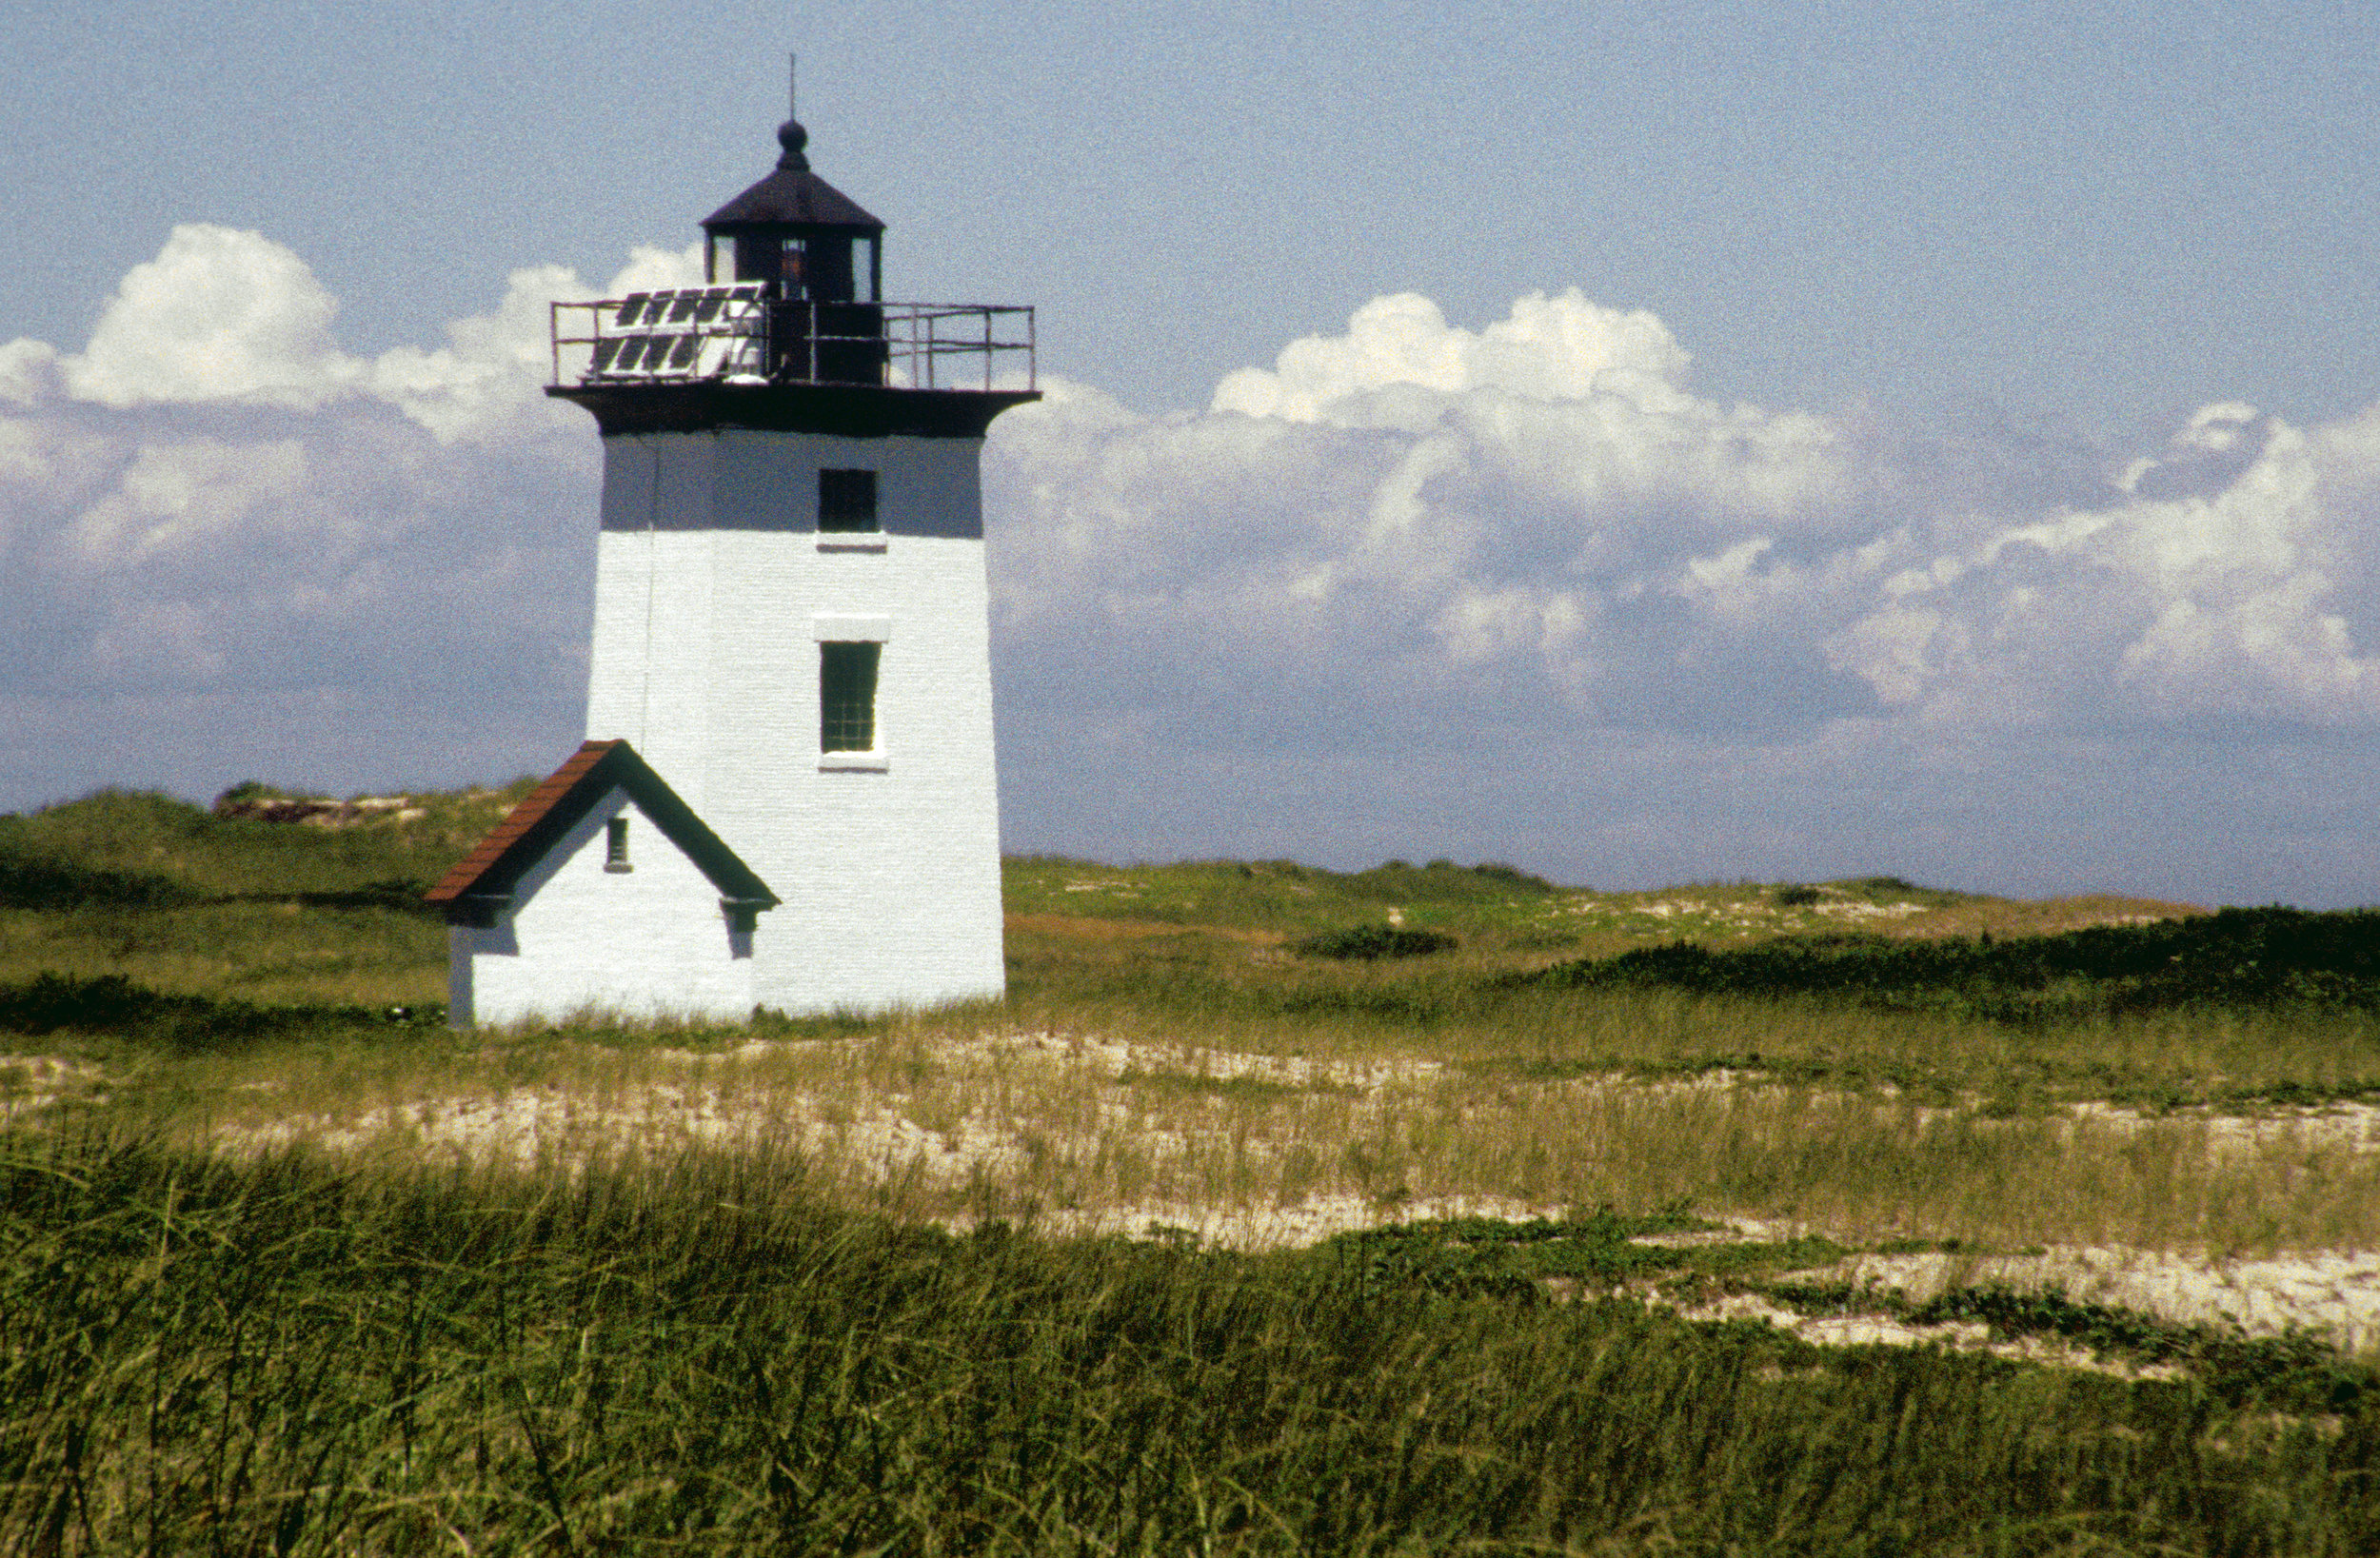 Ptown-Lighthouse-C5.jpg